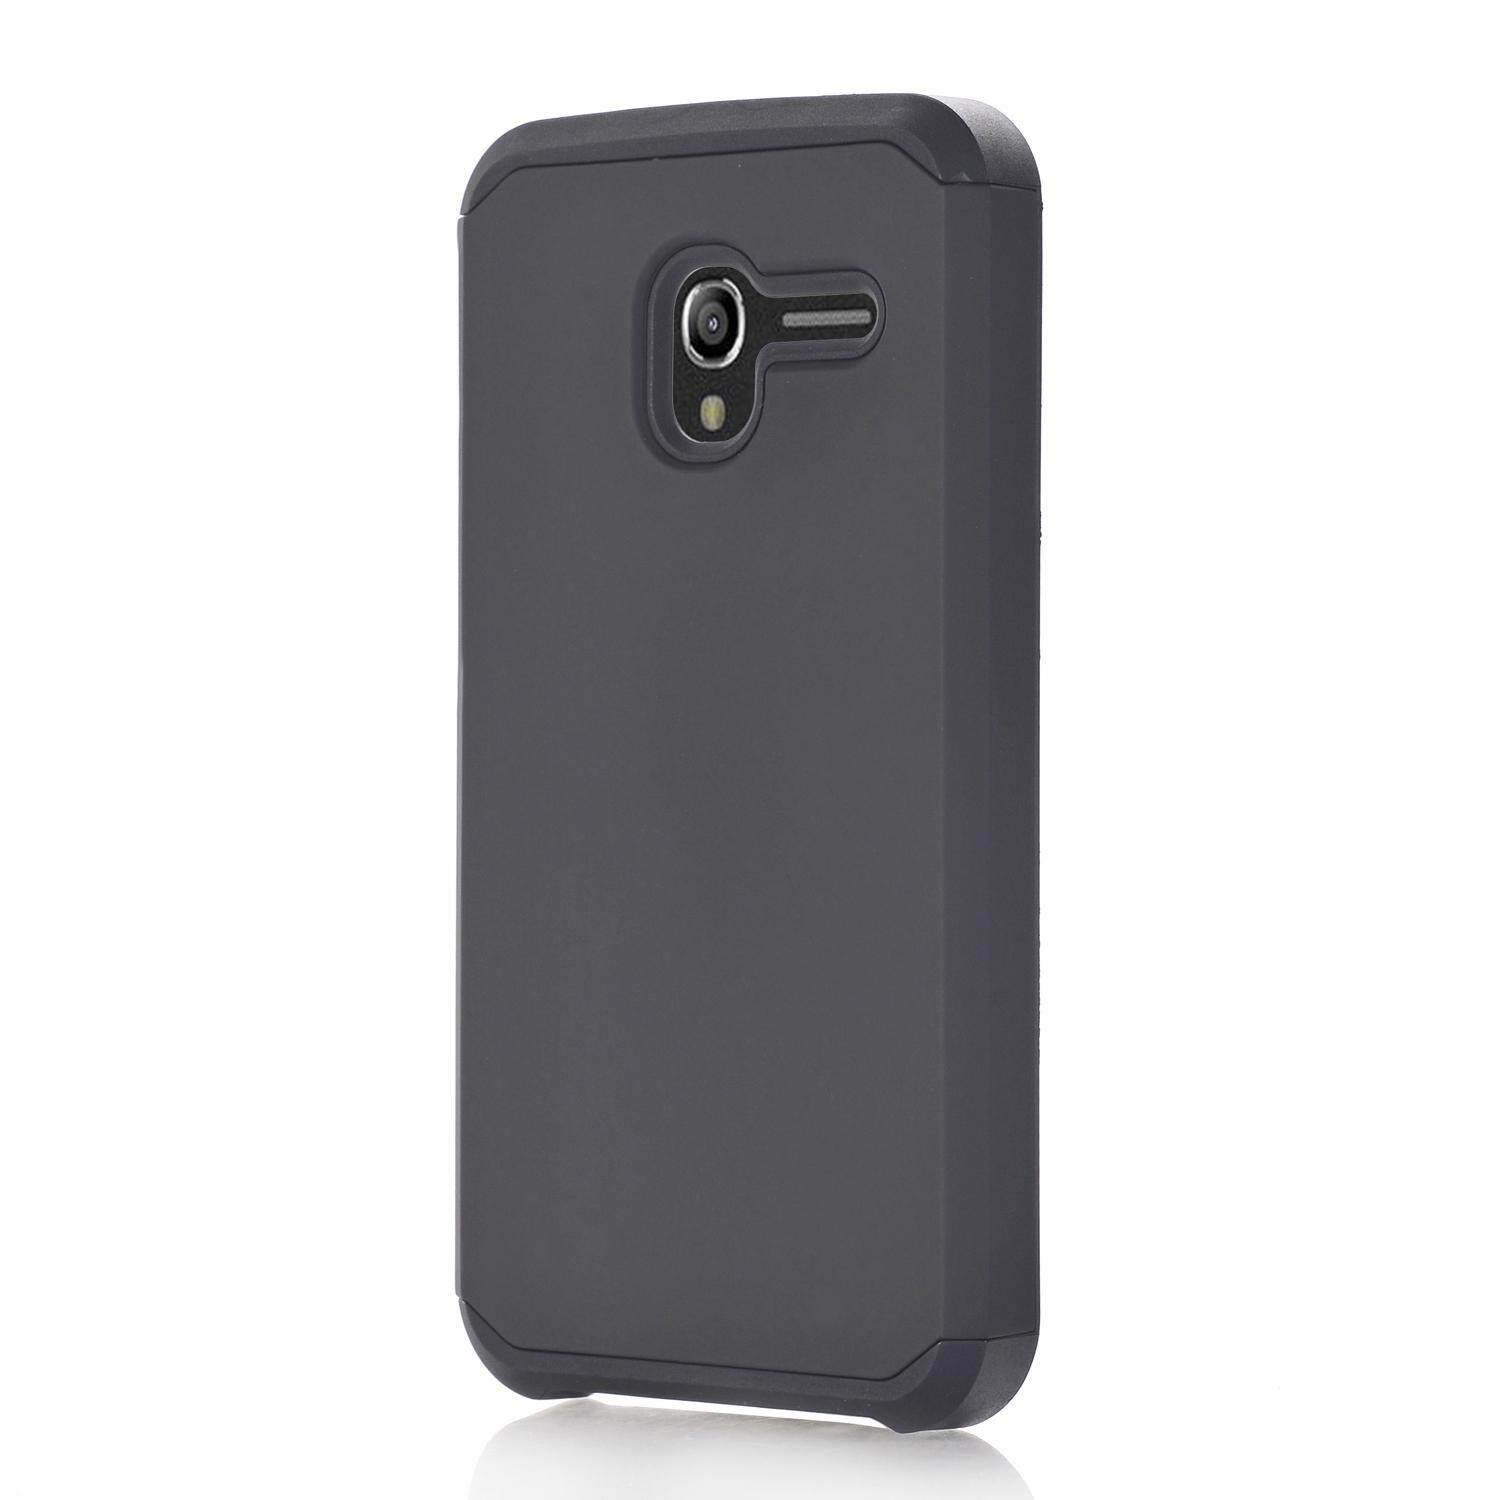 AS Beauty Phone Case for Alcatel TRU Case 2-in-1 TPU Double Layer Drop Protection Cellphone Cover Shockproof Slim Mobile Phone Back Case - intl